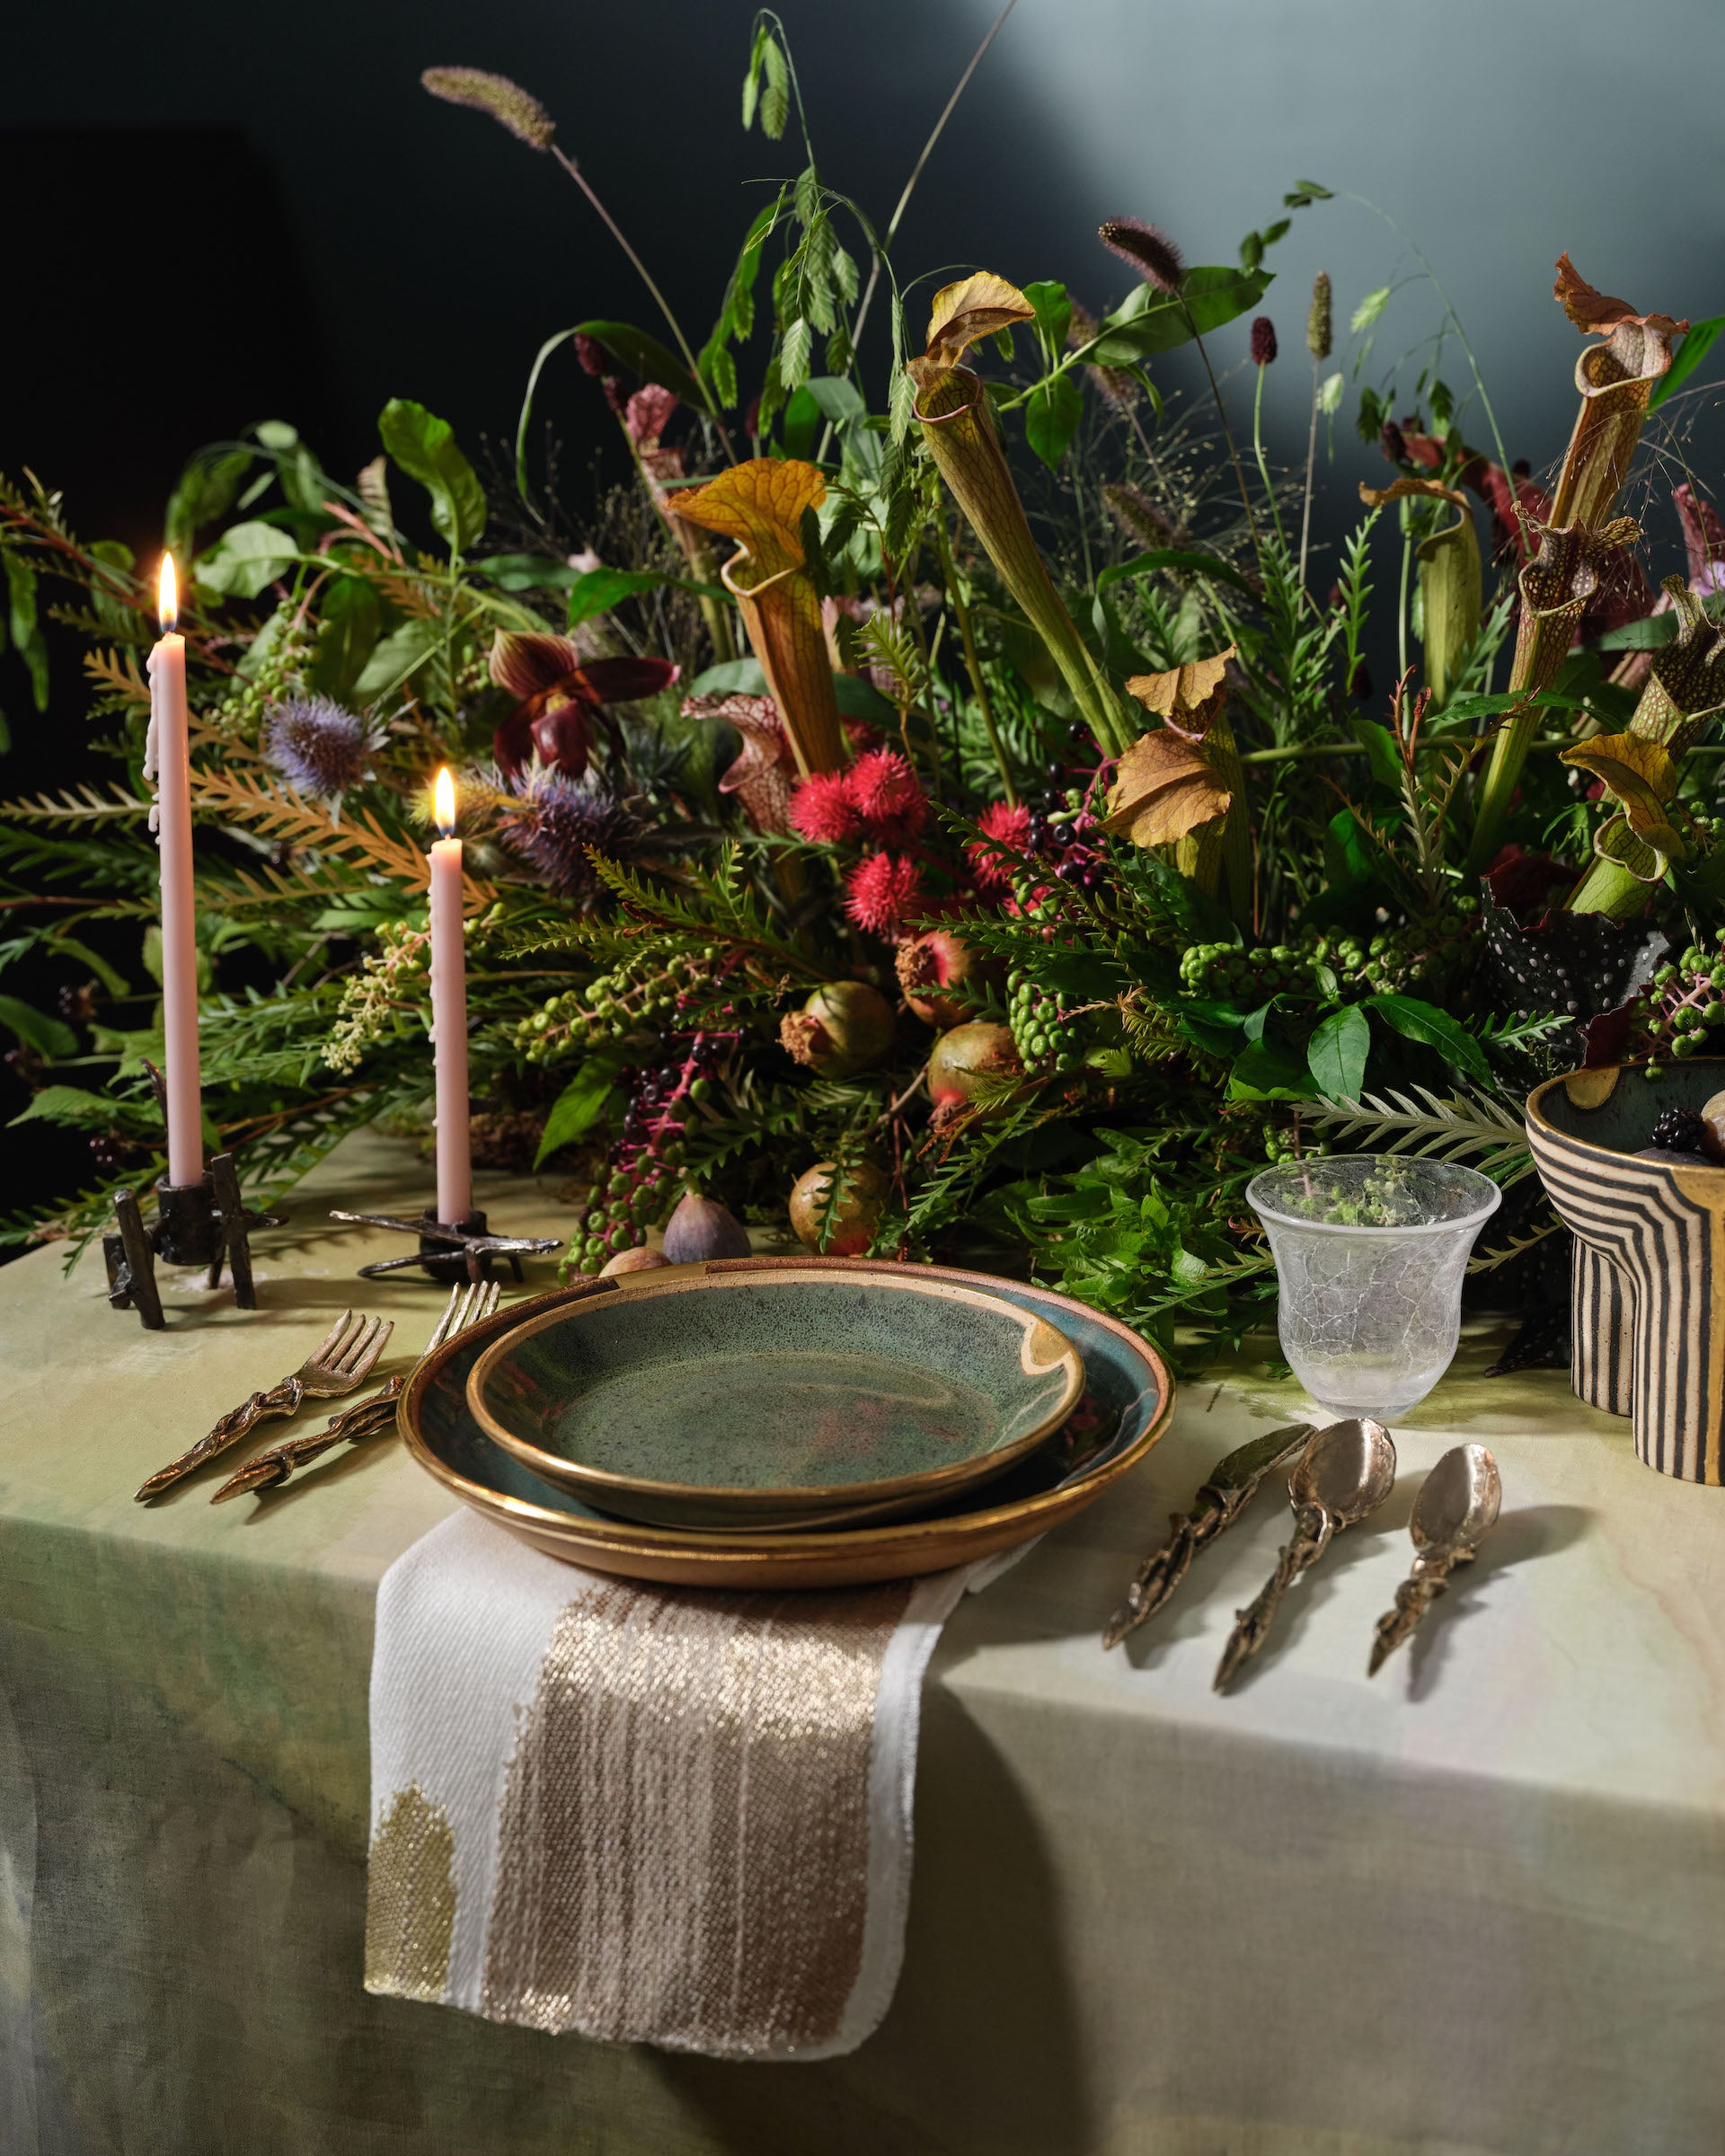 The Feast, curated by Kristen McGinnis. Featuring one-of-a-kind works by artist-designers Jeremy Anderson, Yolande Milan Batteau, Farrell Hundley, Michiko Sakano, and Hiroko Takeda. Photo © DM/BX